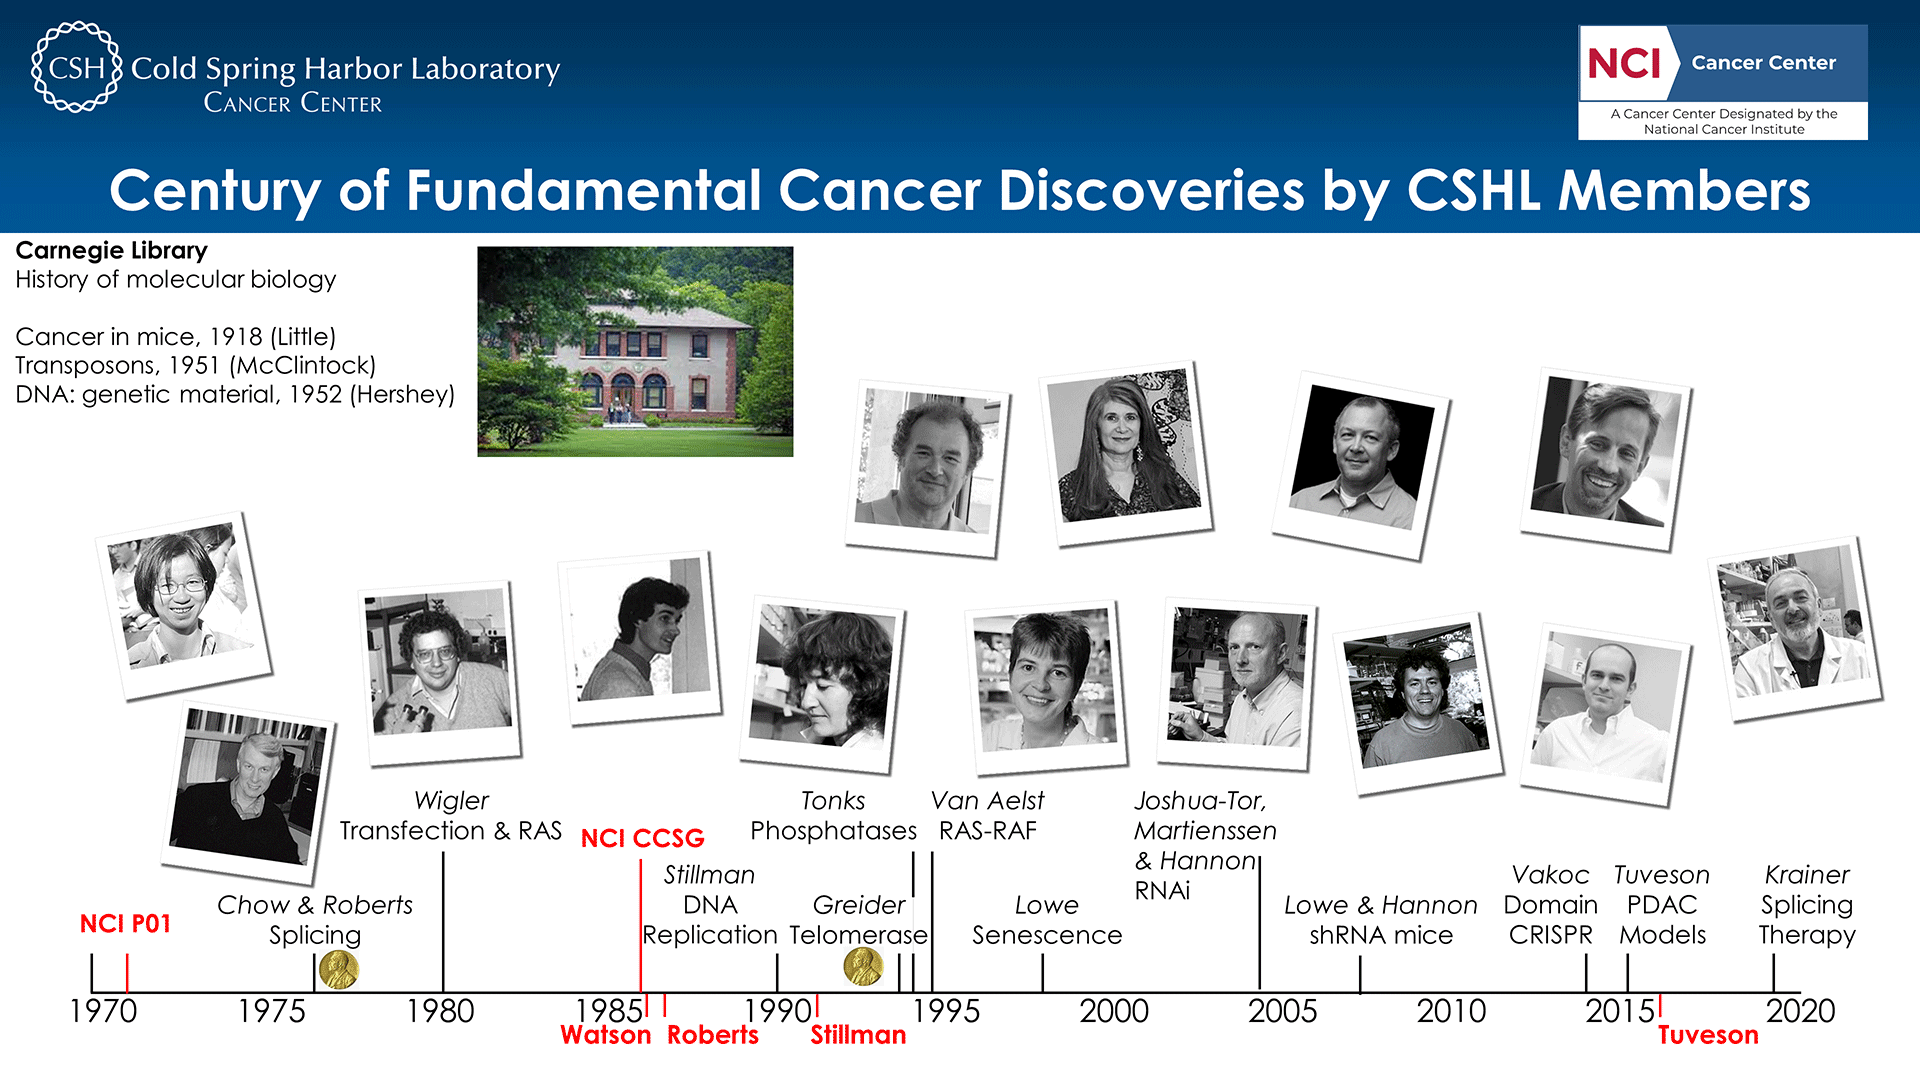 image of Cold Spring Harbor Laboratory researchers with timeline